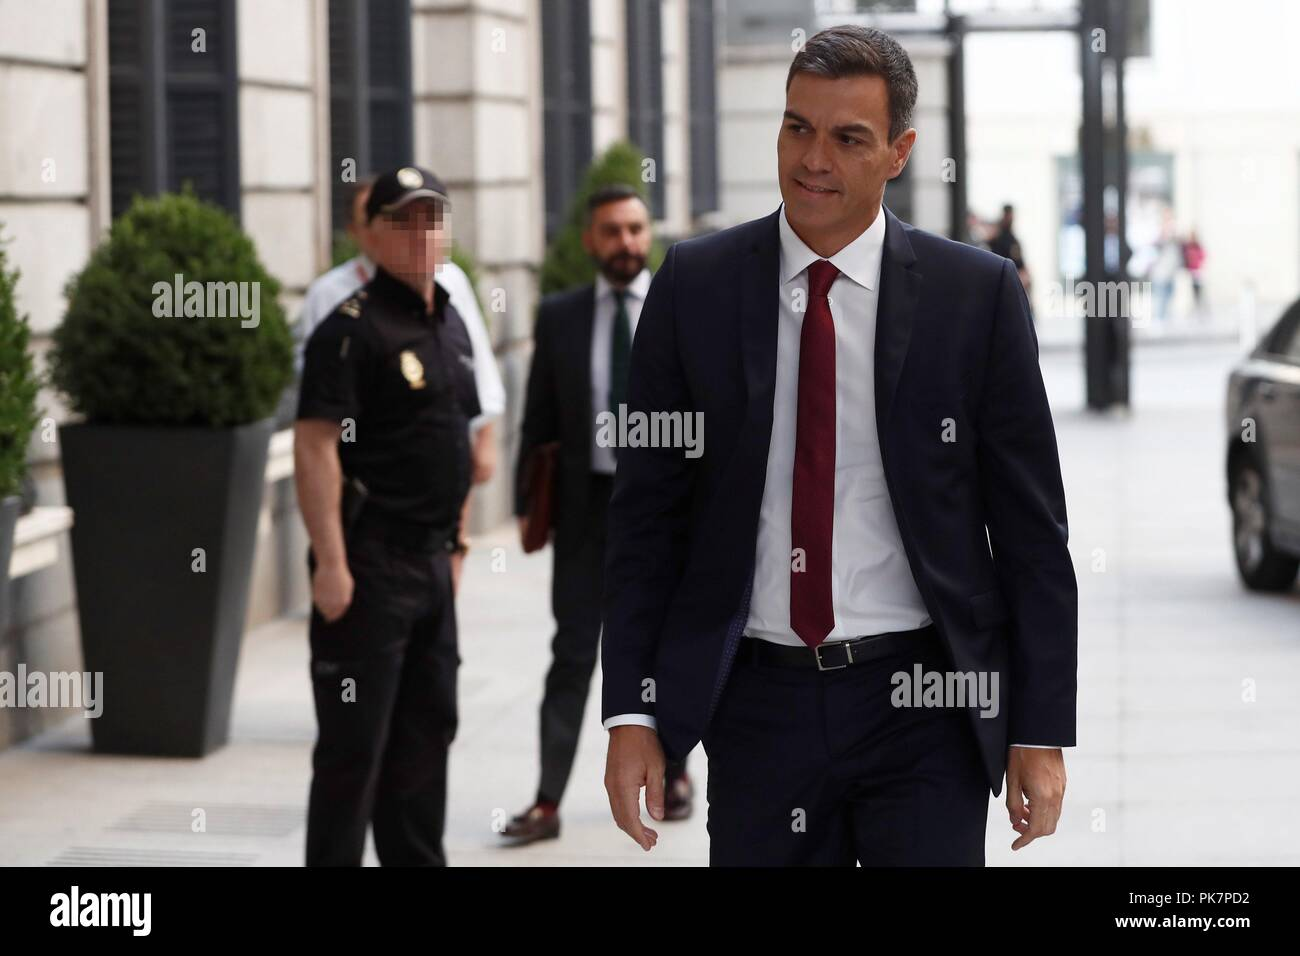 Madrid, Spain. 12th Sep, 2018. Spanish Prime Minister, Pedro Sanchez, arrives to the Lower House in Madrid, Spain, to attend question time, 12 September 2018. Credit: Mariscal/EFE/Alamy Live News - Stock Image